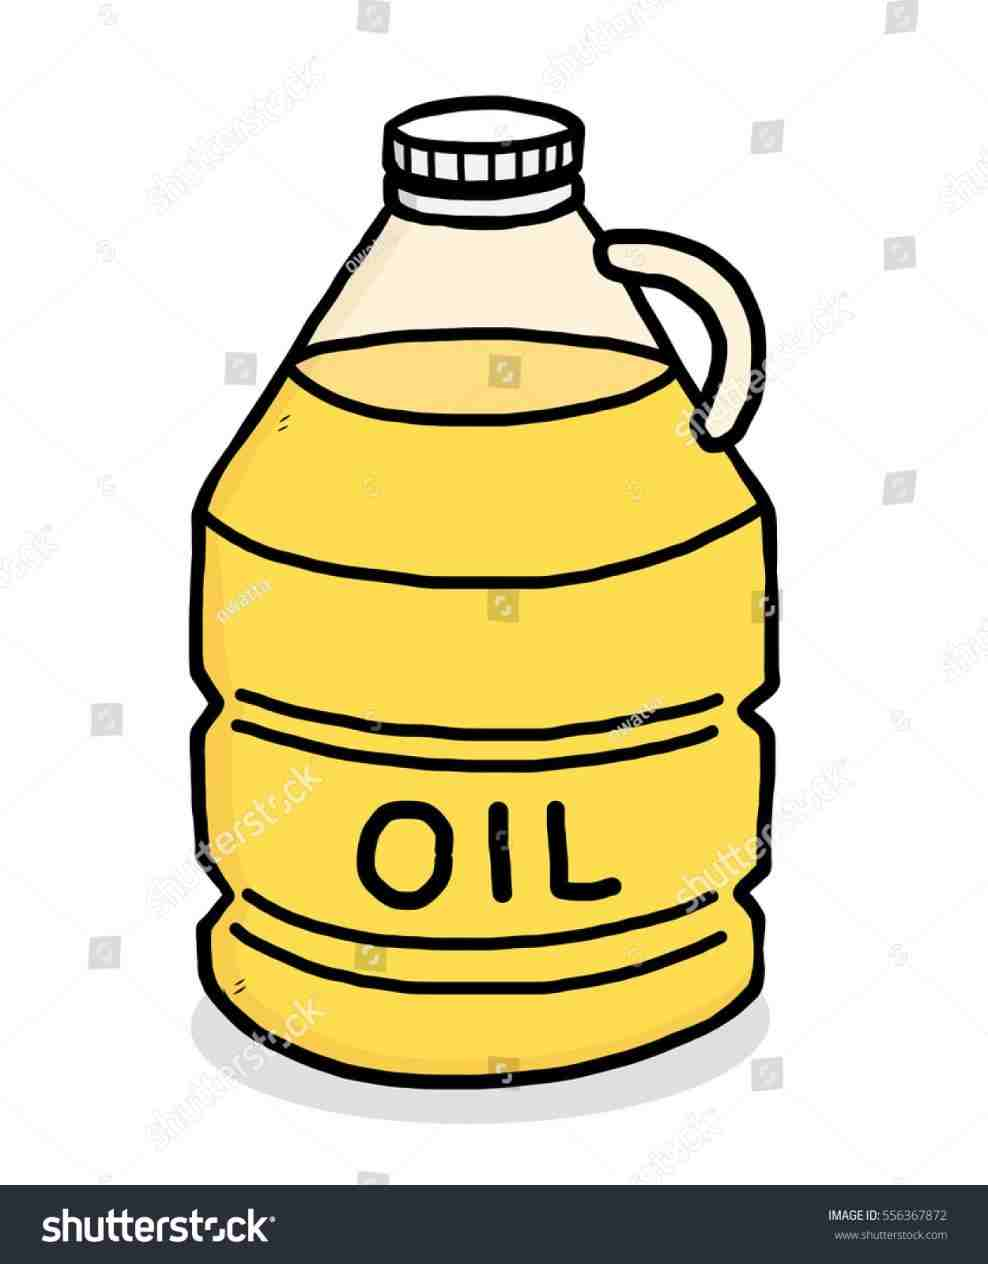 Vegetable Cooking Oil Clipart oil bottle cartoon » Clipart Station.